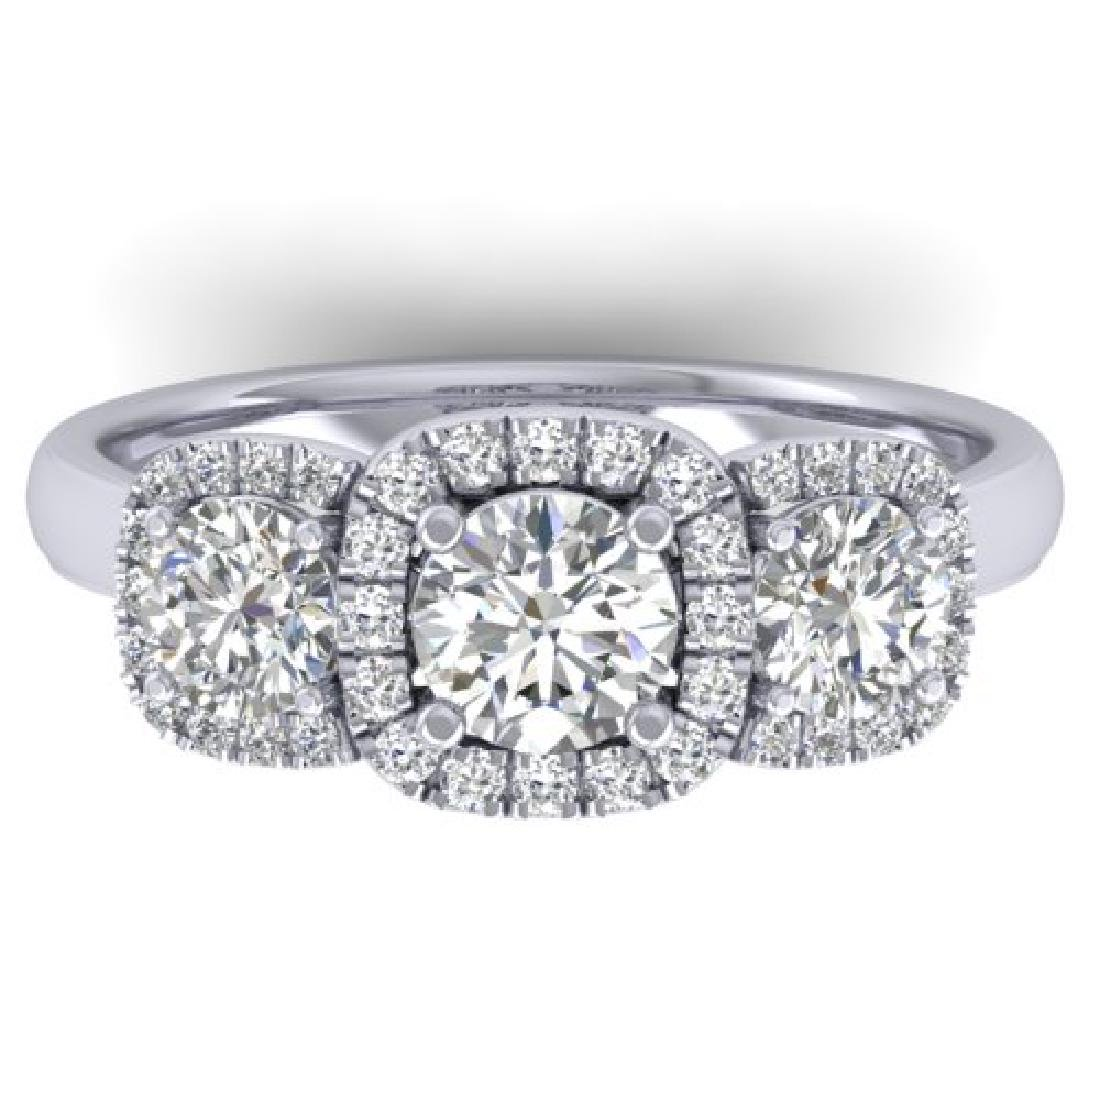 1.55 CTW Certified VS/SI Diamond Solitaire 3 Stone Ring